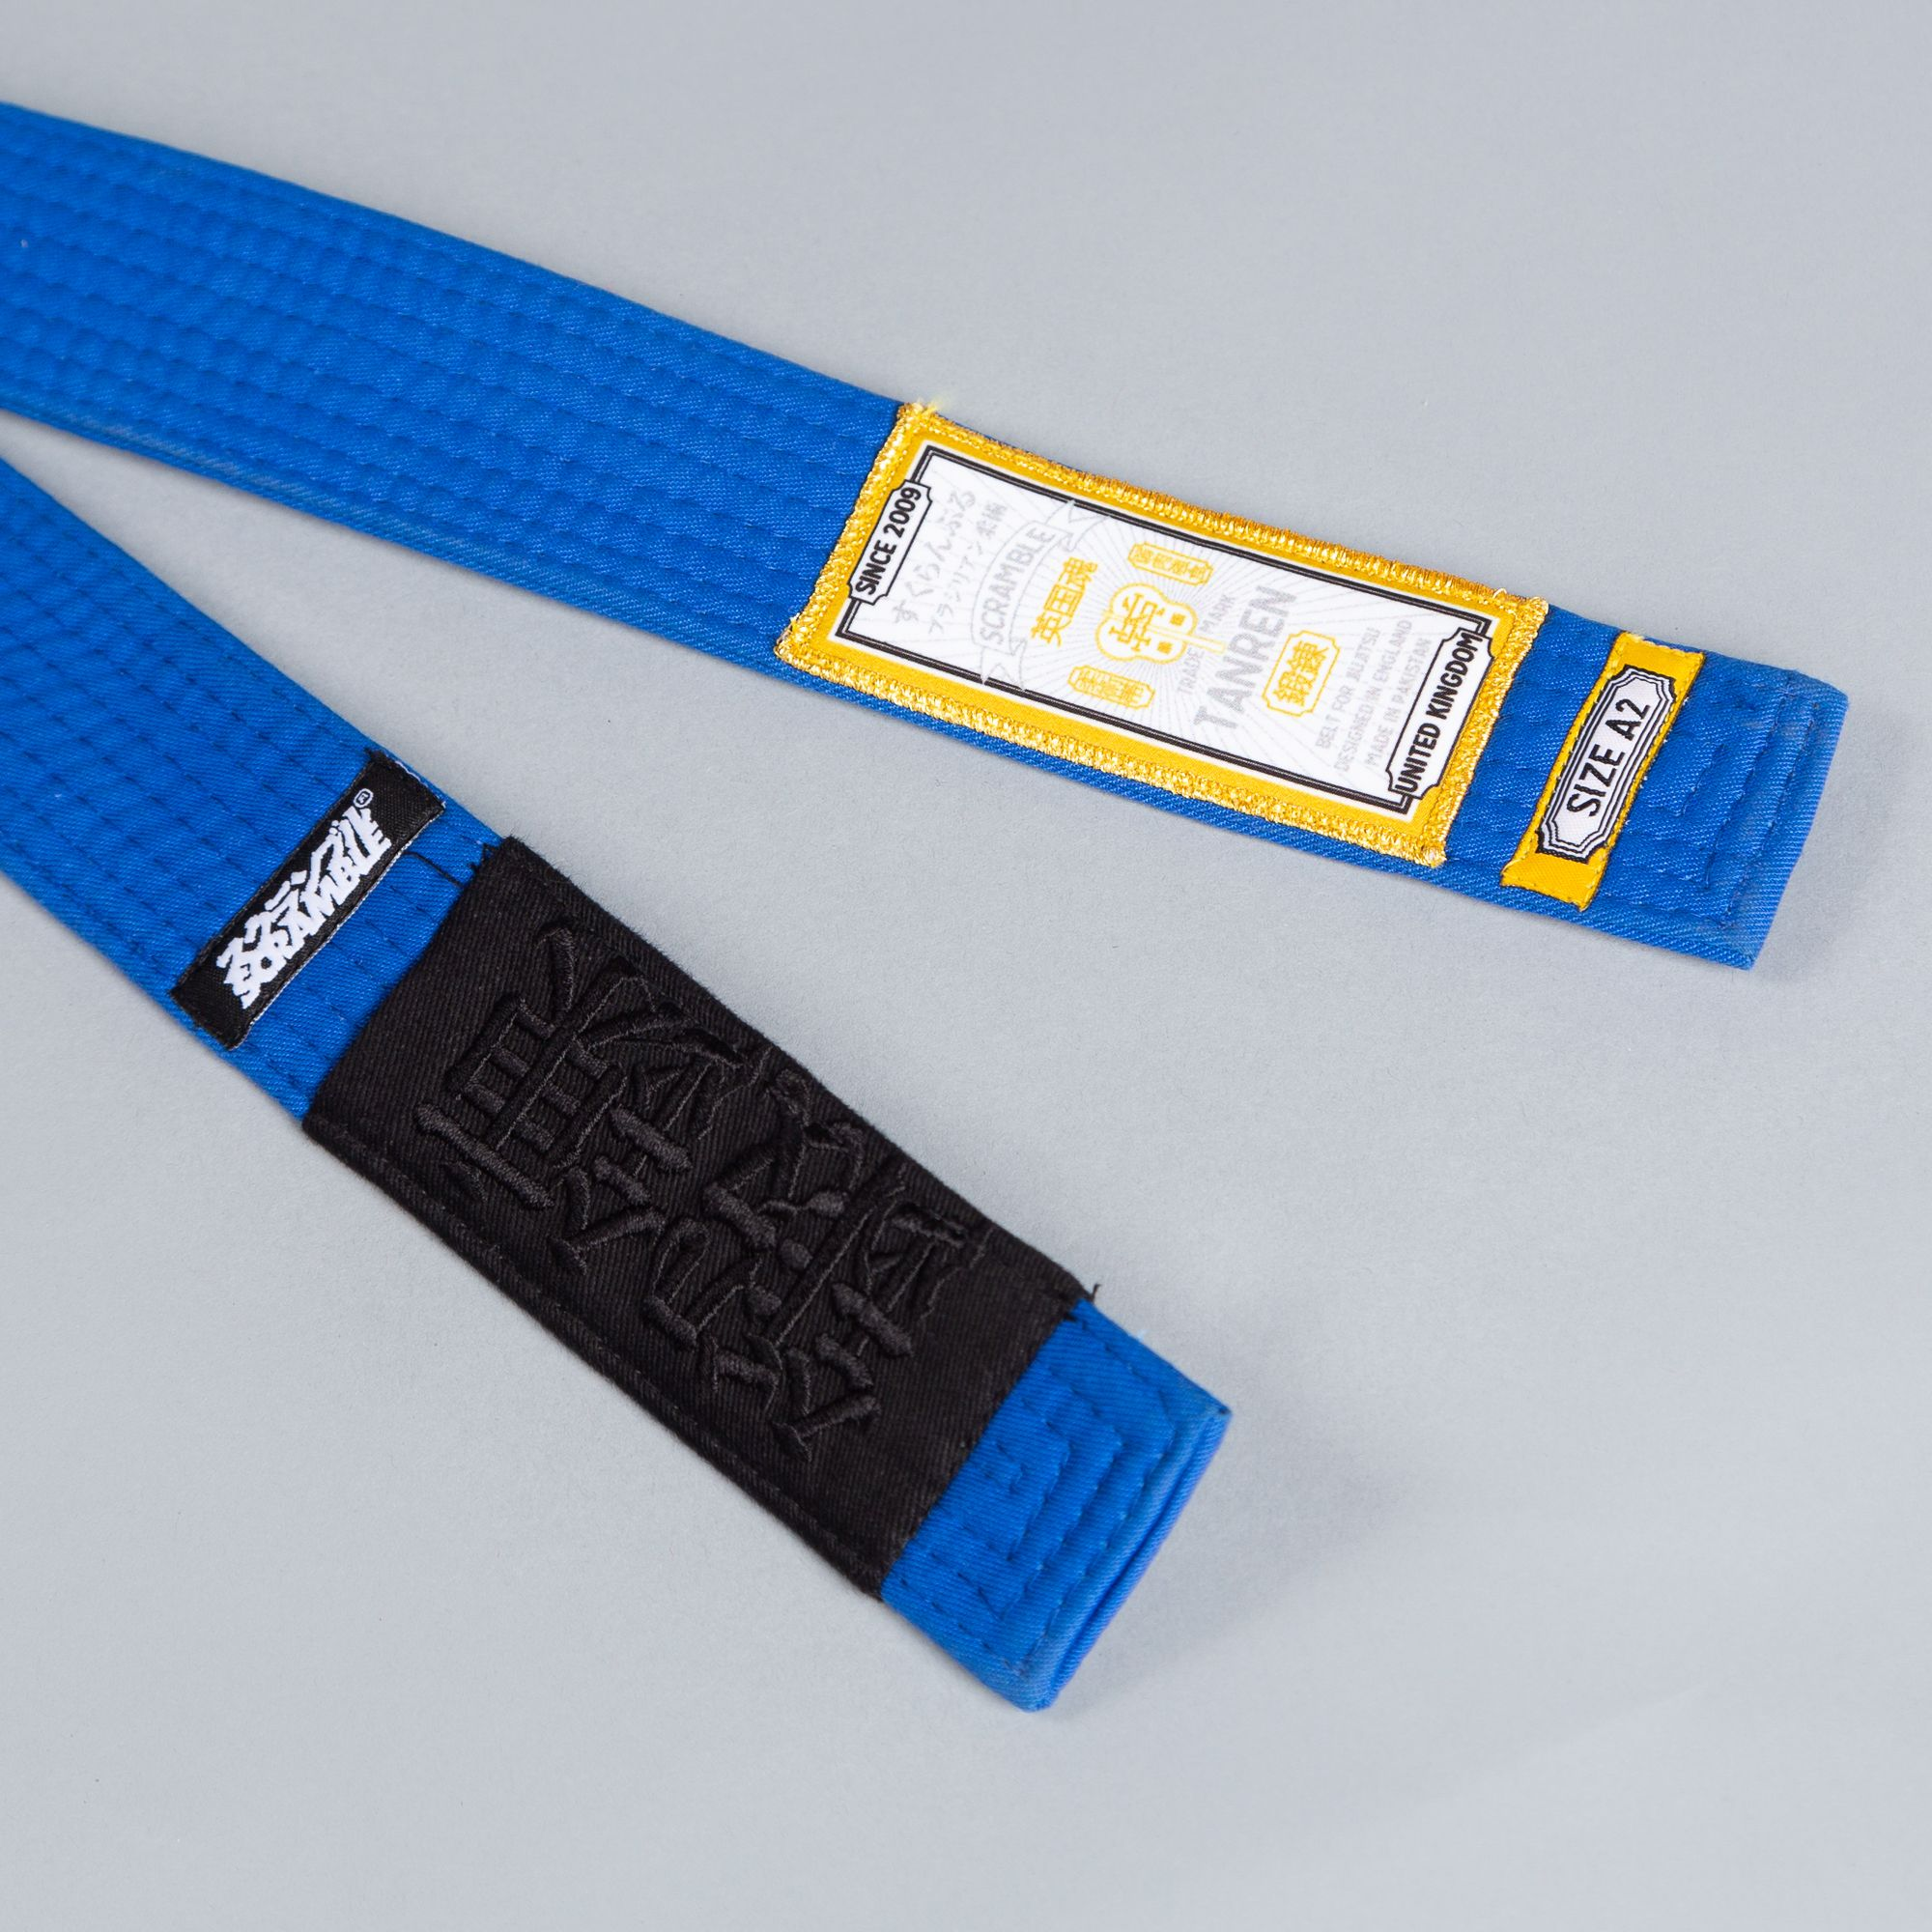 SCRAMBLE TANREN V4 BJJ BELT – BLUE